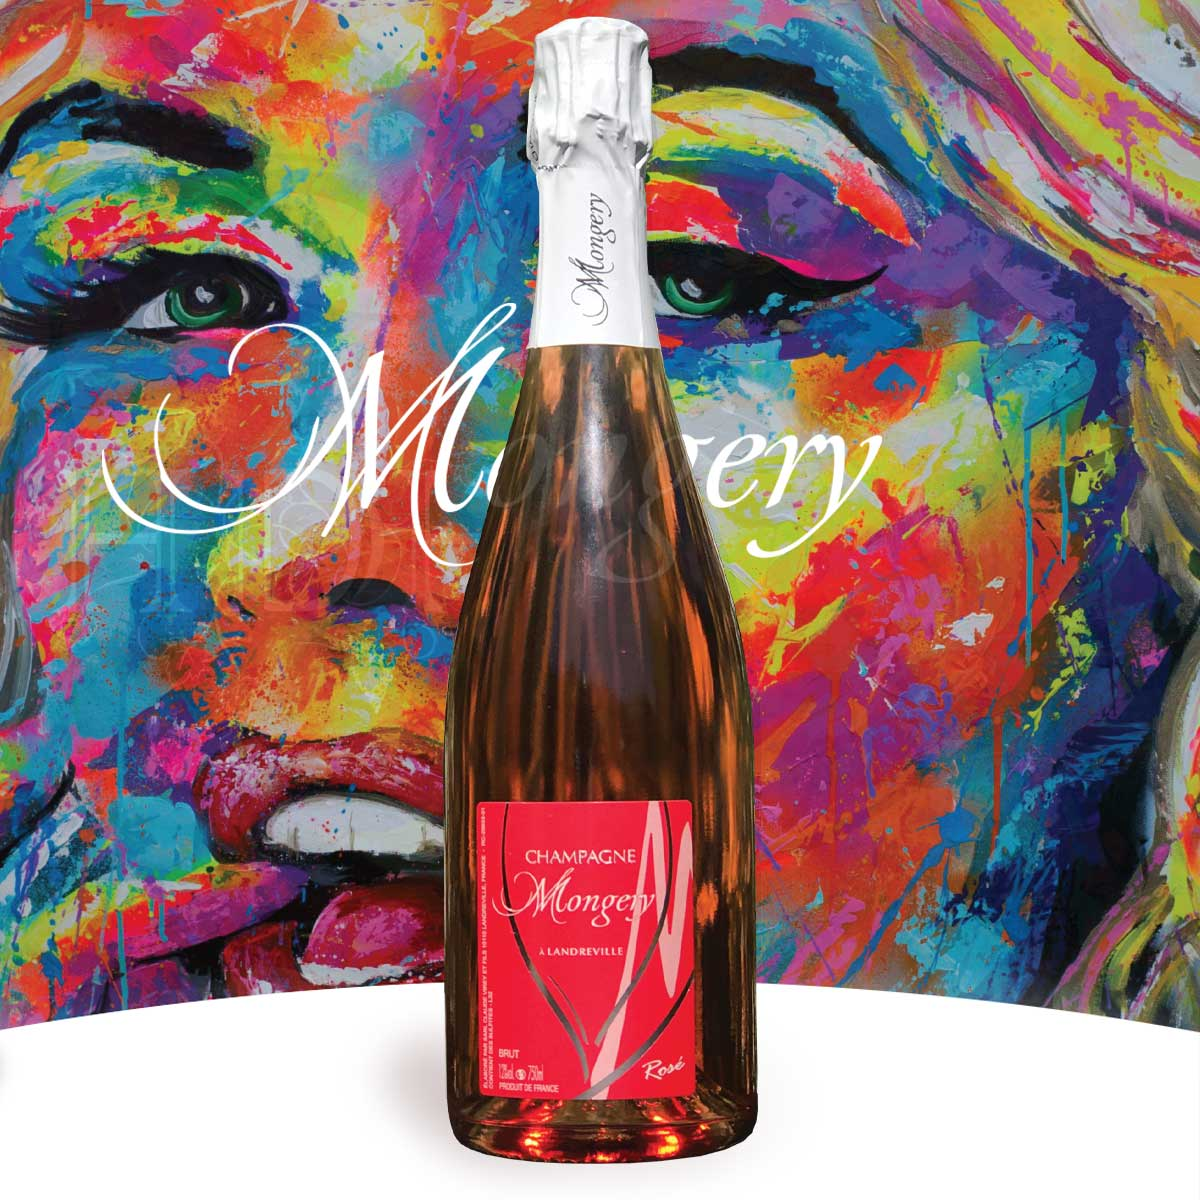 CHAMPAGNE IN A BUBBLE I MONGERY